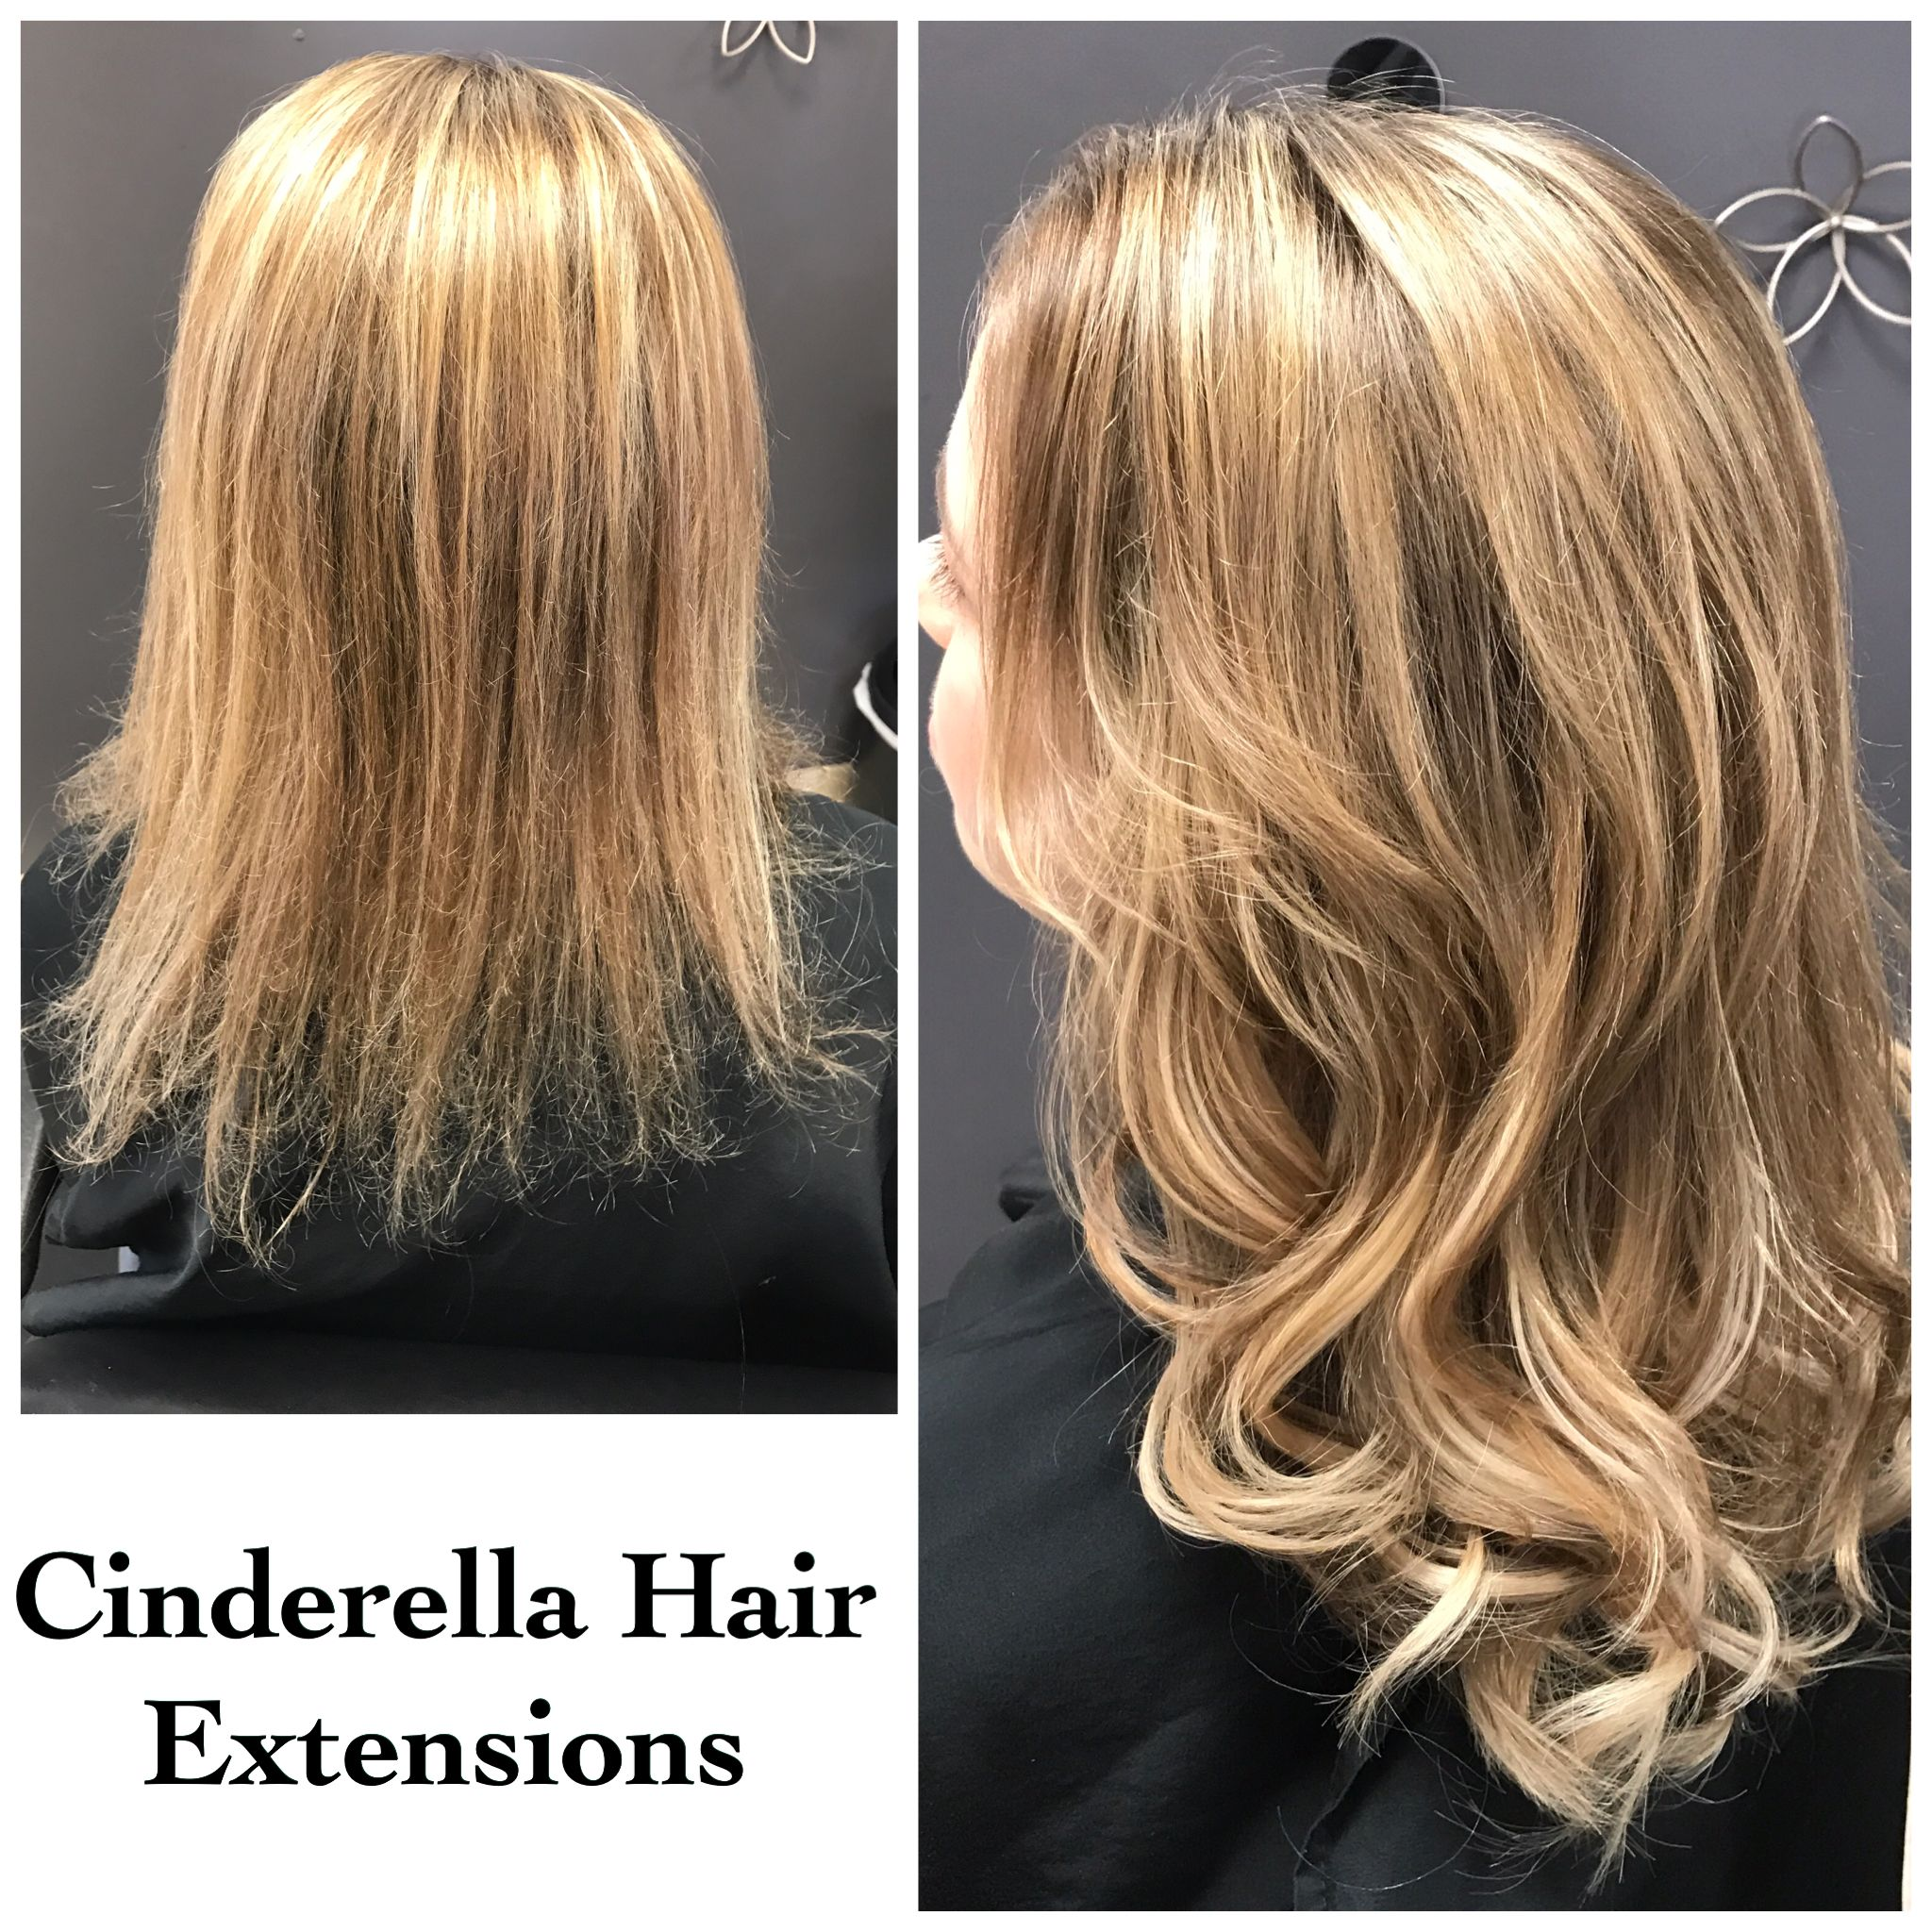 Pin By West 13th Salon On Cinderella Hair Extensions Pinterest